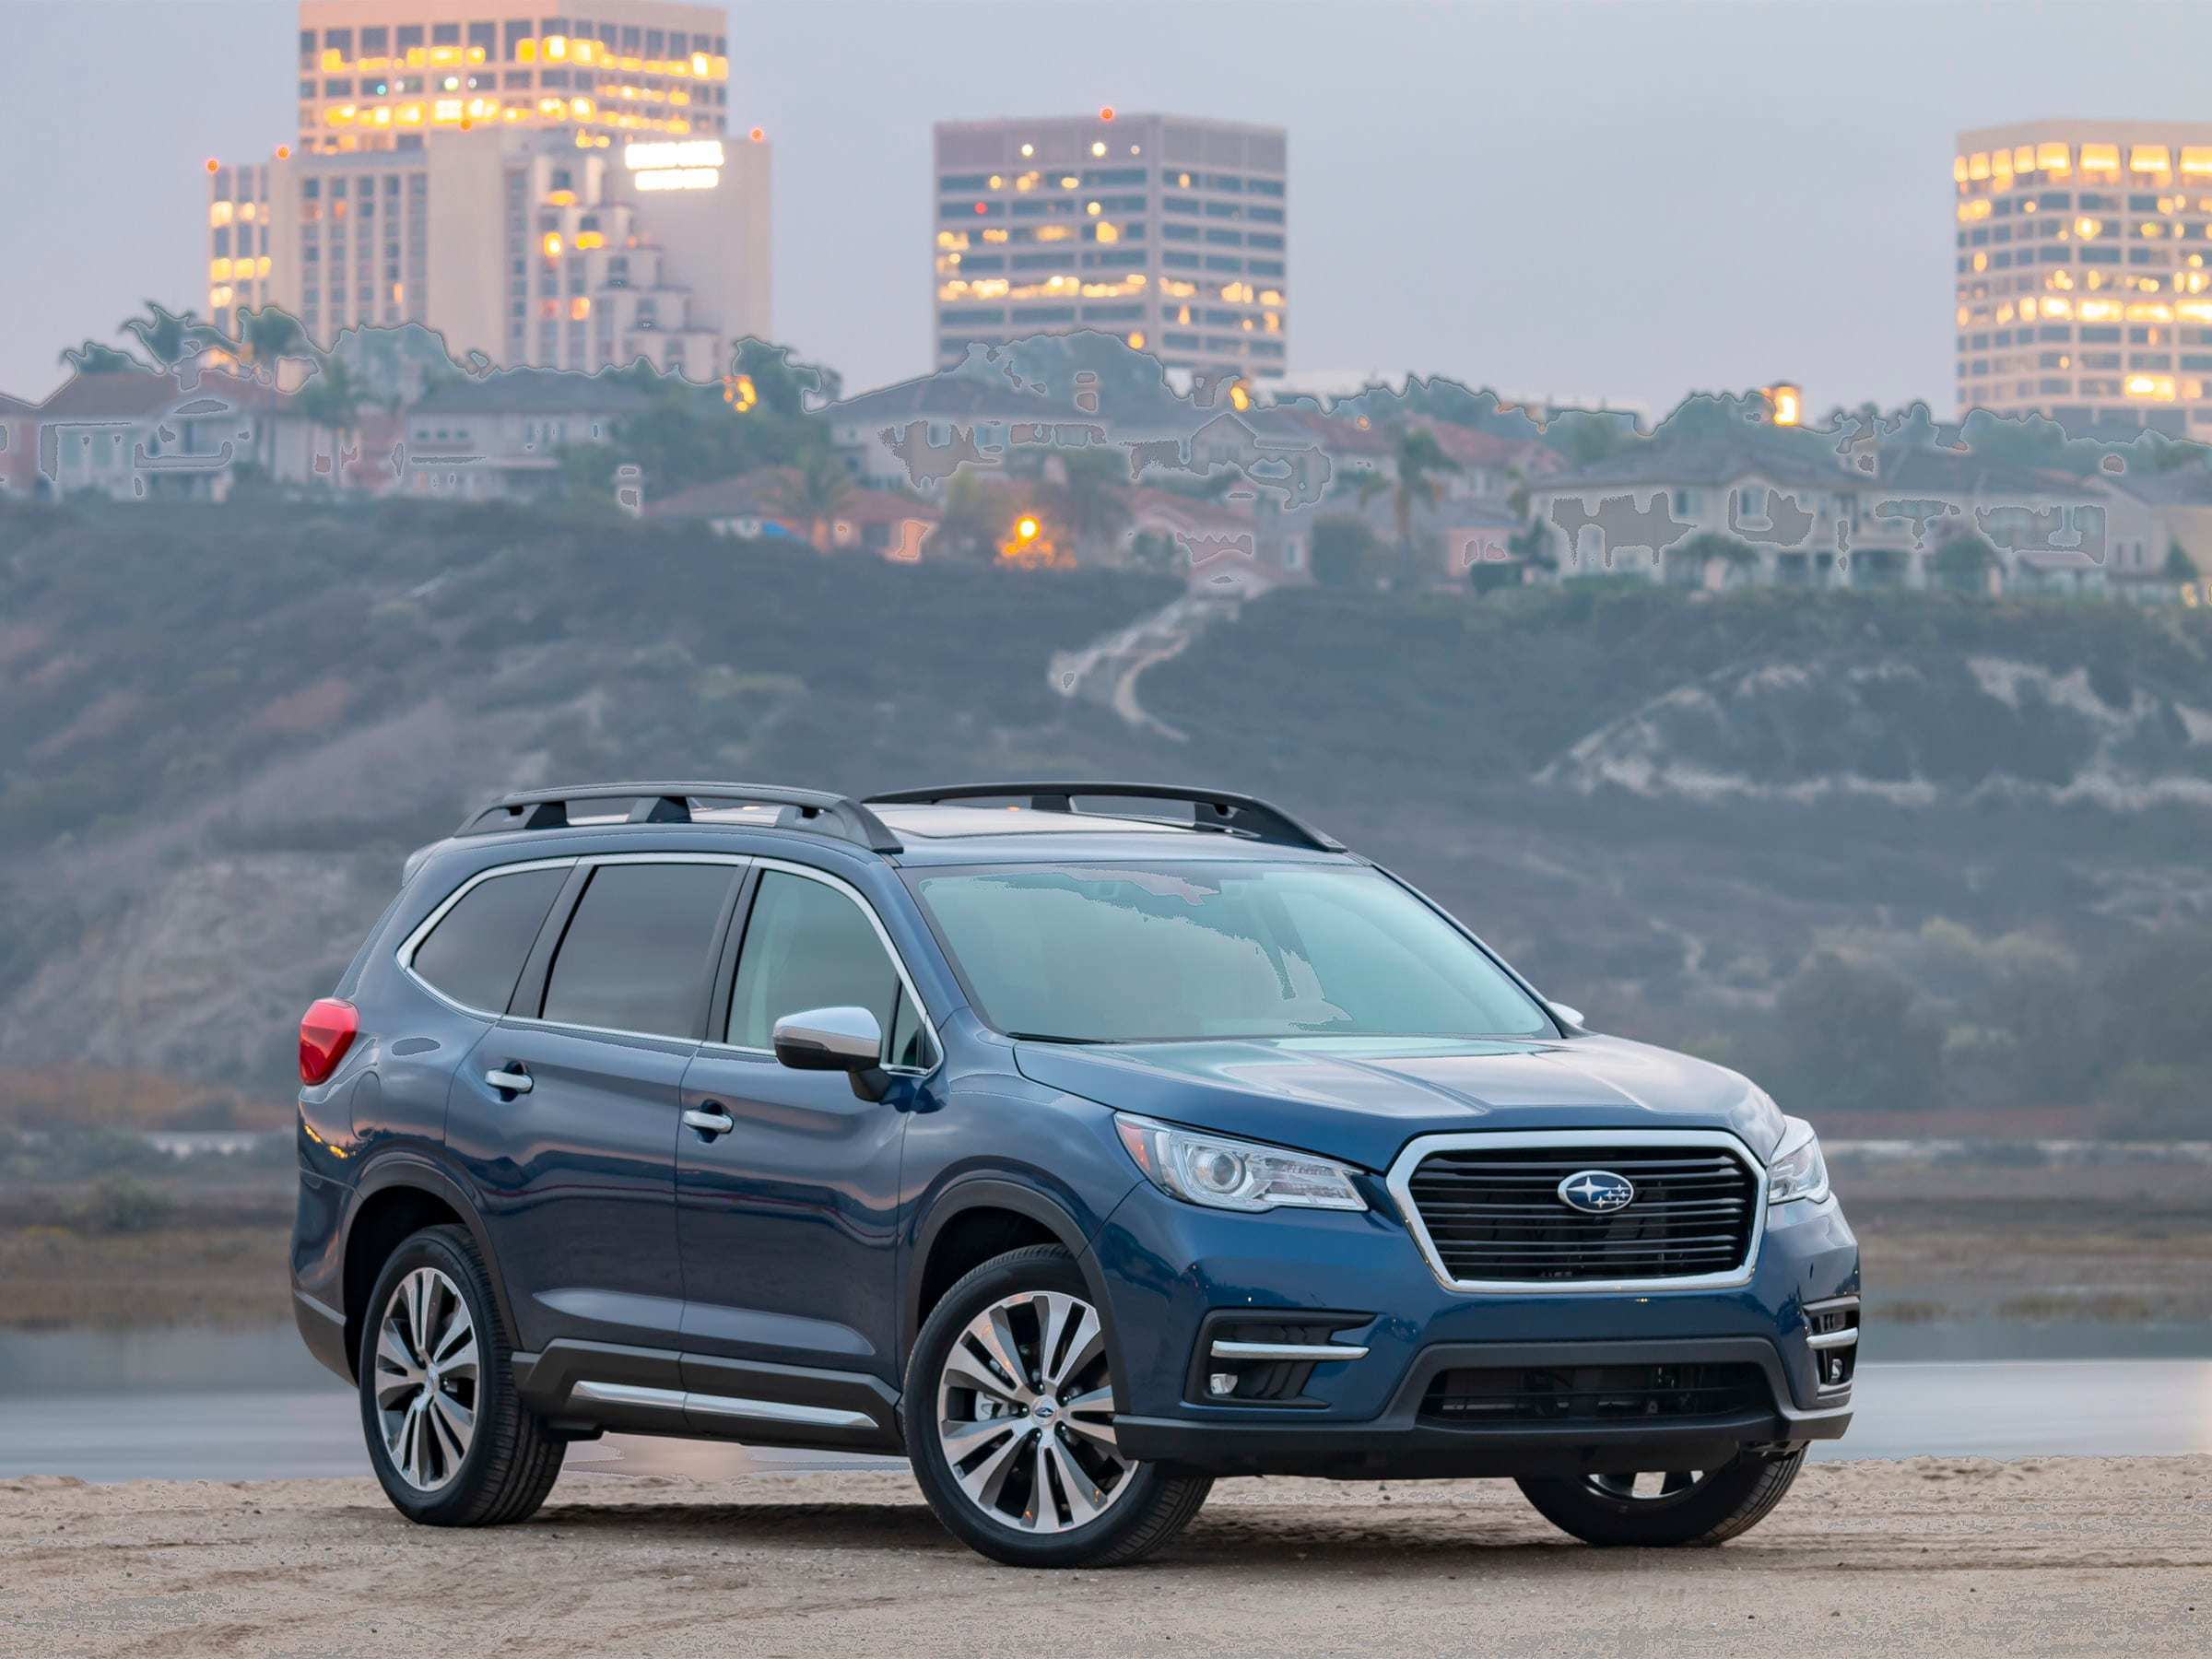 33 Great 2019 Subaru Ascent Fuel Economy Research New by 2019 Subaru Ascent Fuel Economy